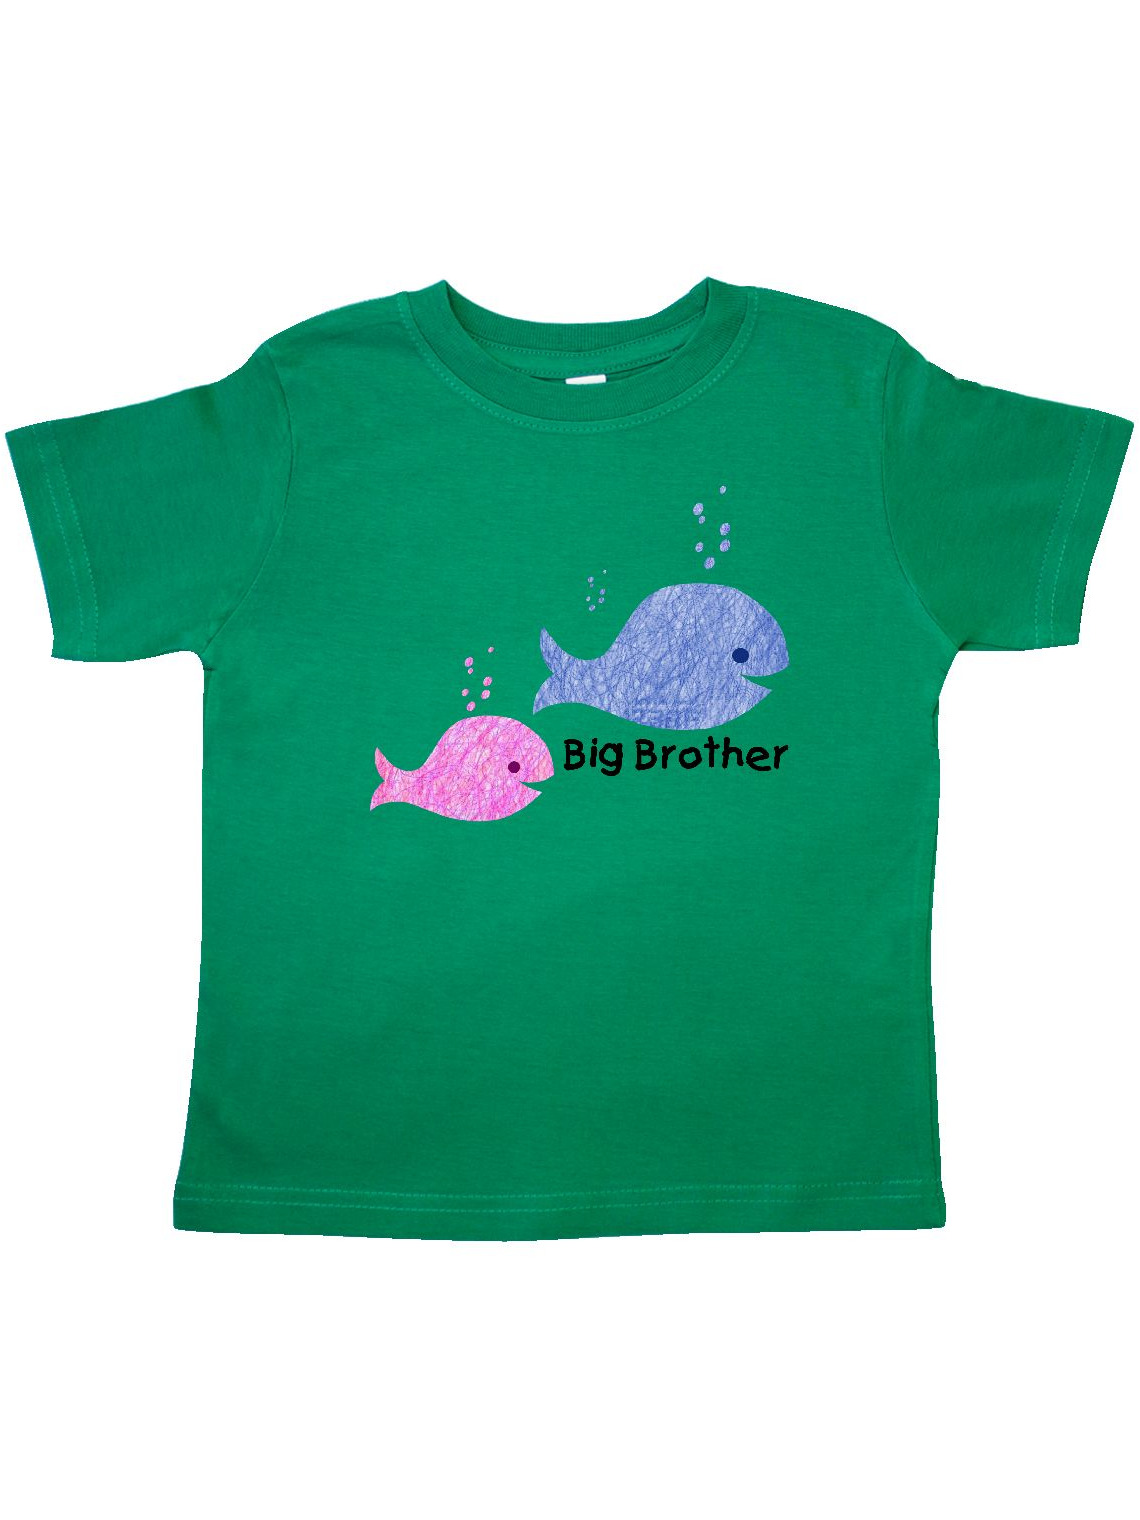 Big Brother with Lil' Sister Toddler T-Shirt